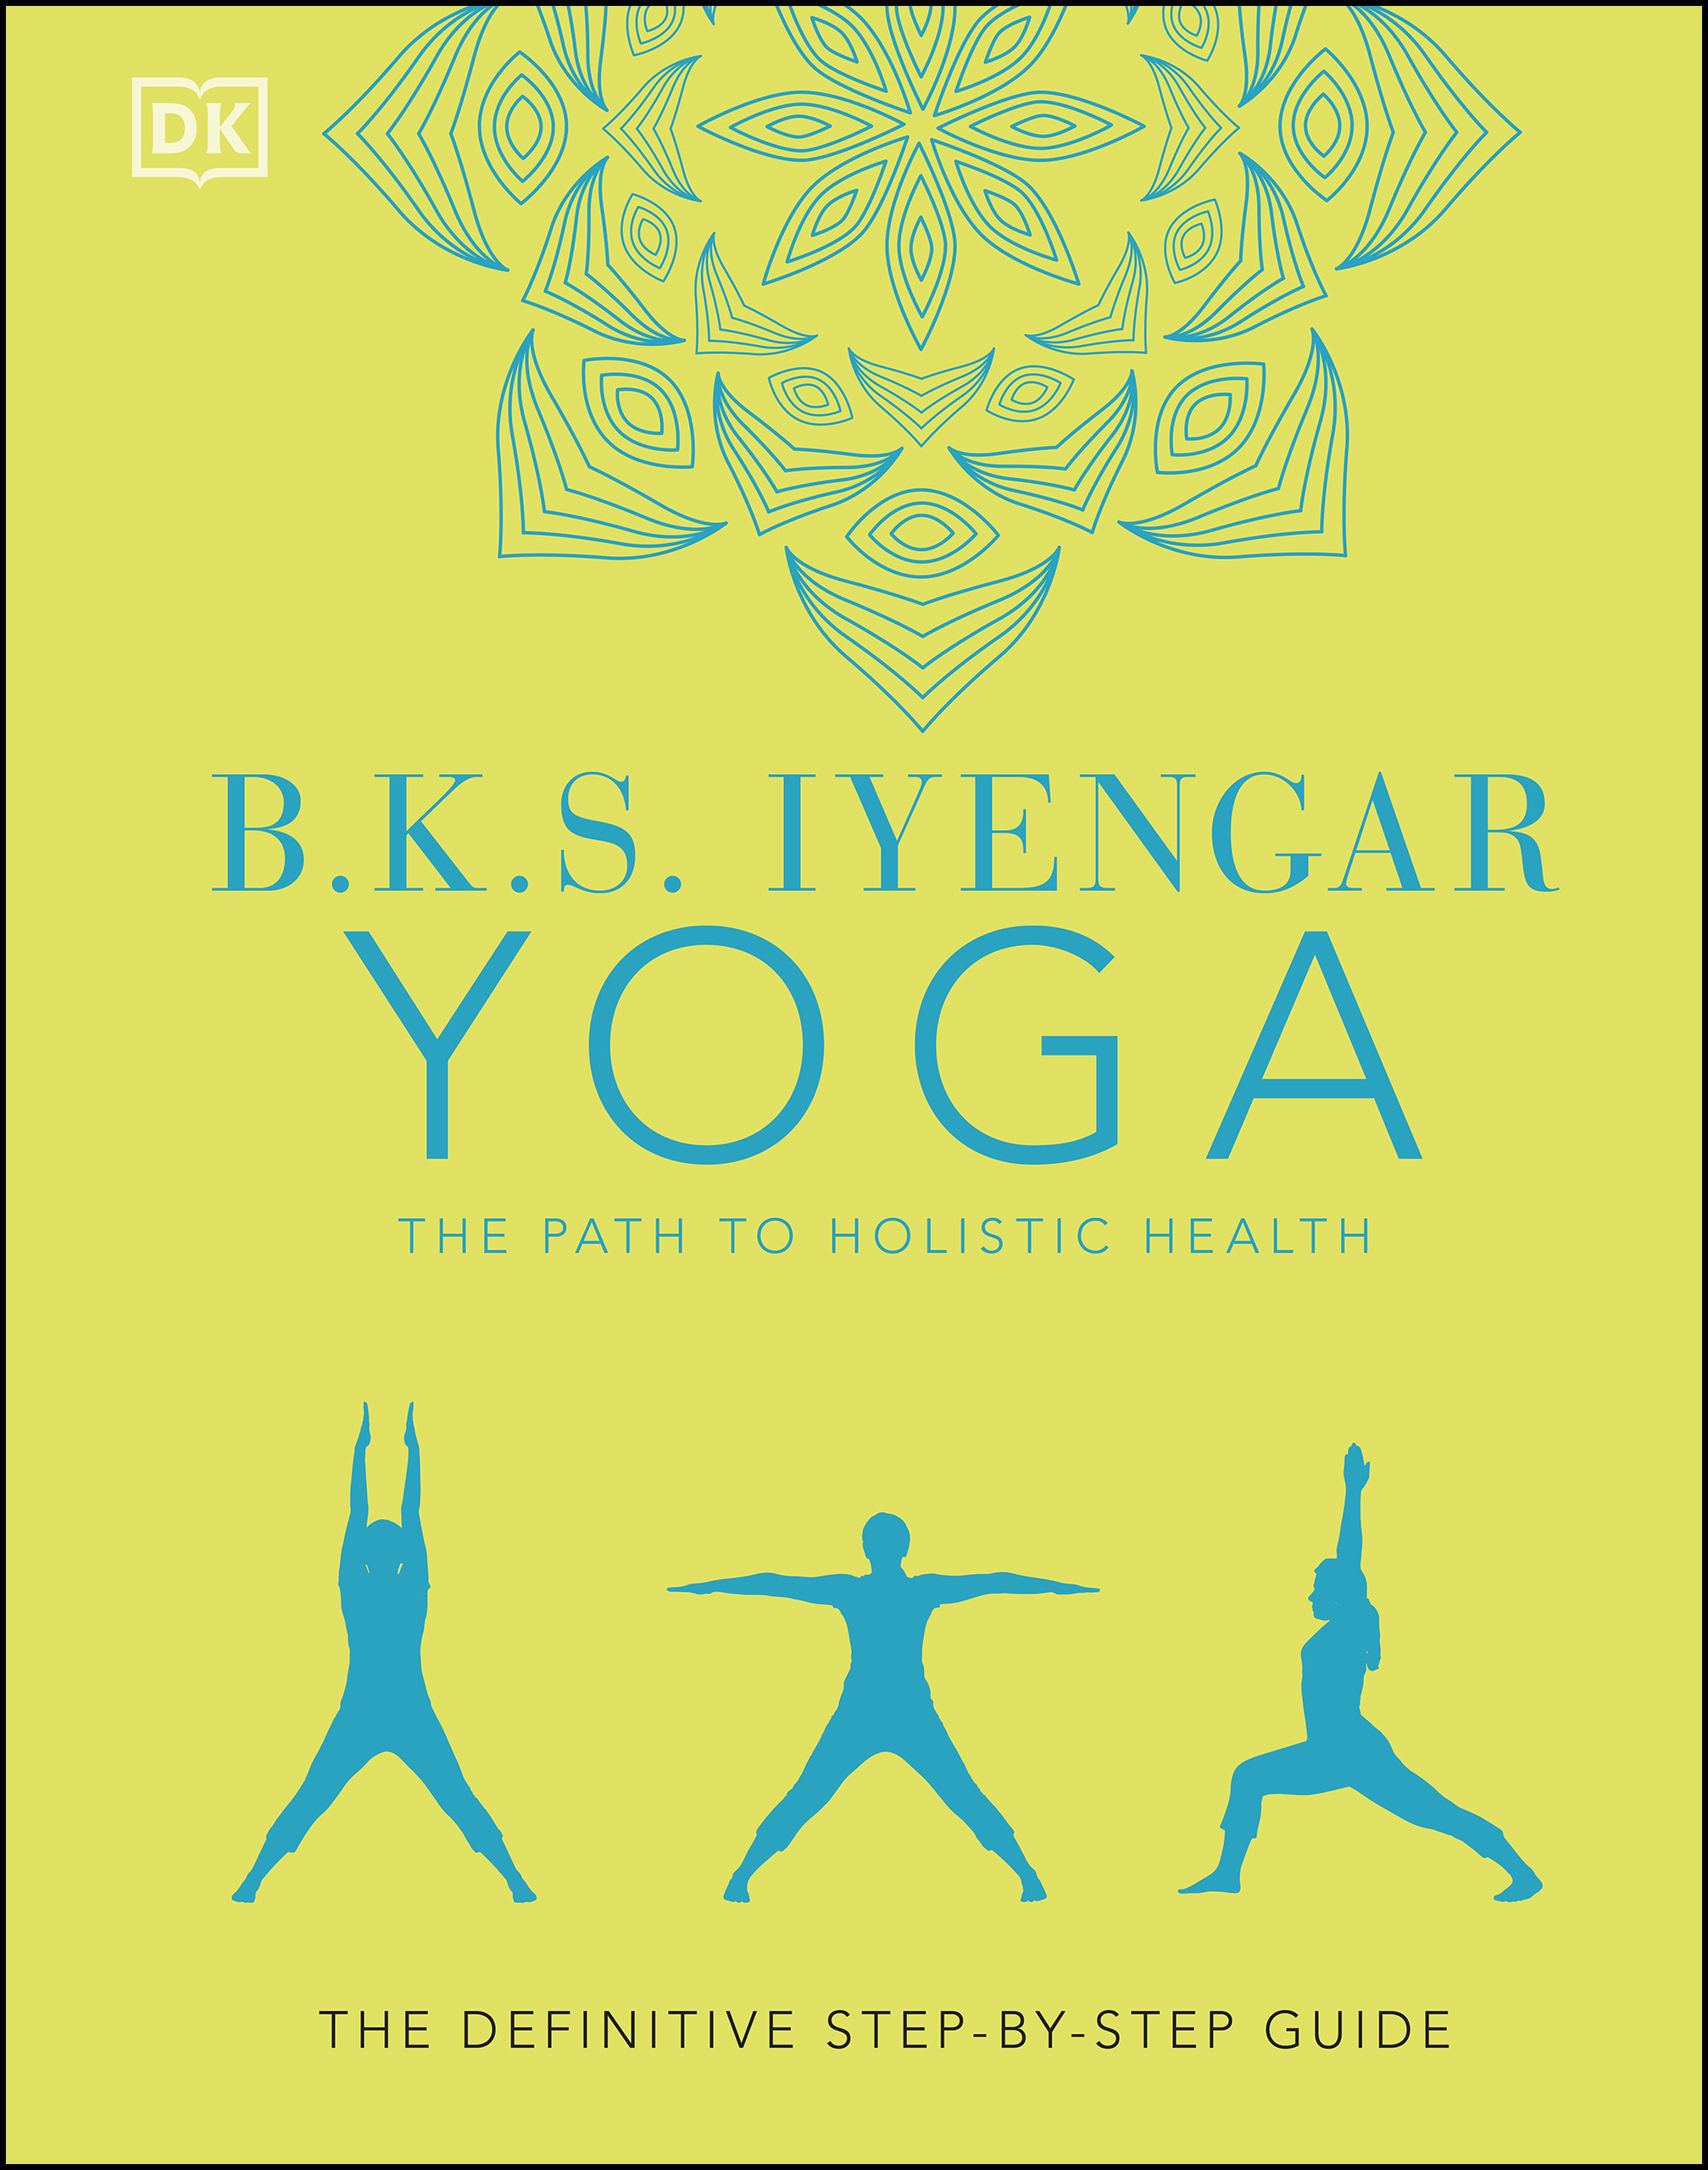 B.K.S. Iyengar Yoga The Path to Holistic Health The Definitive Step-by-step Guide